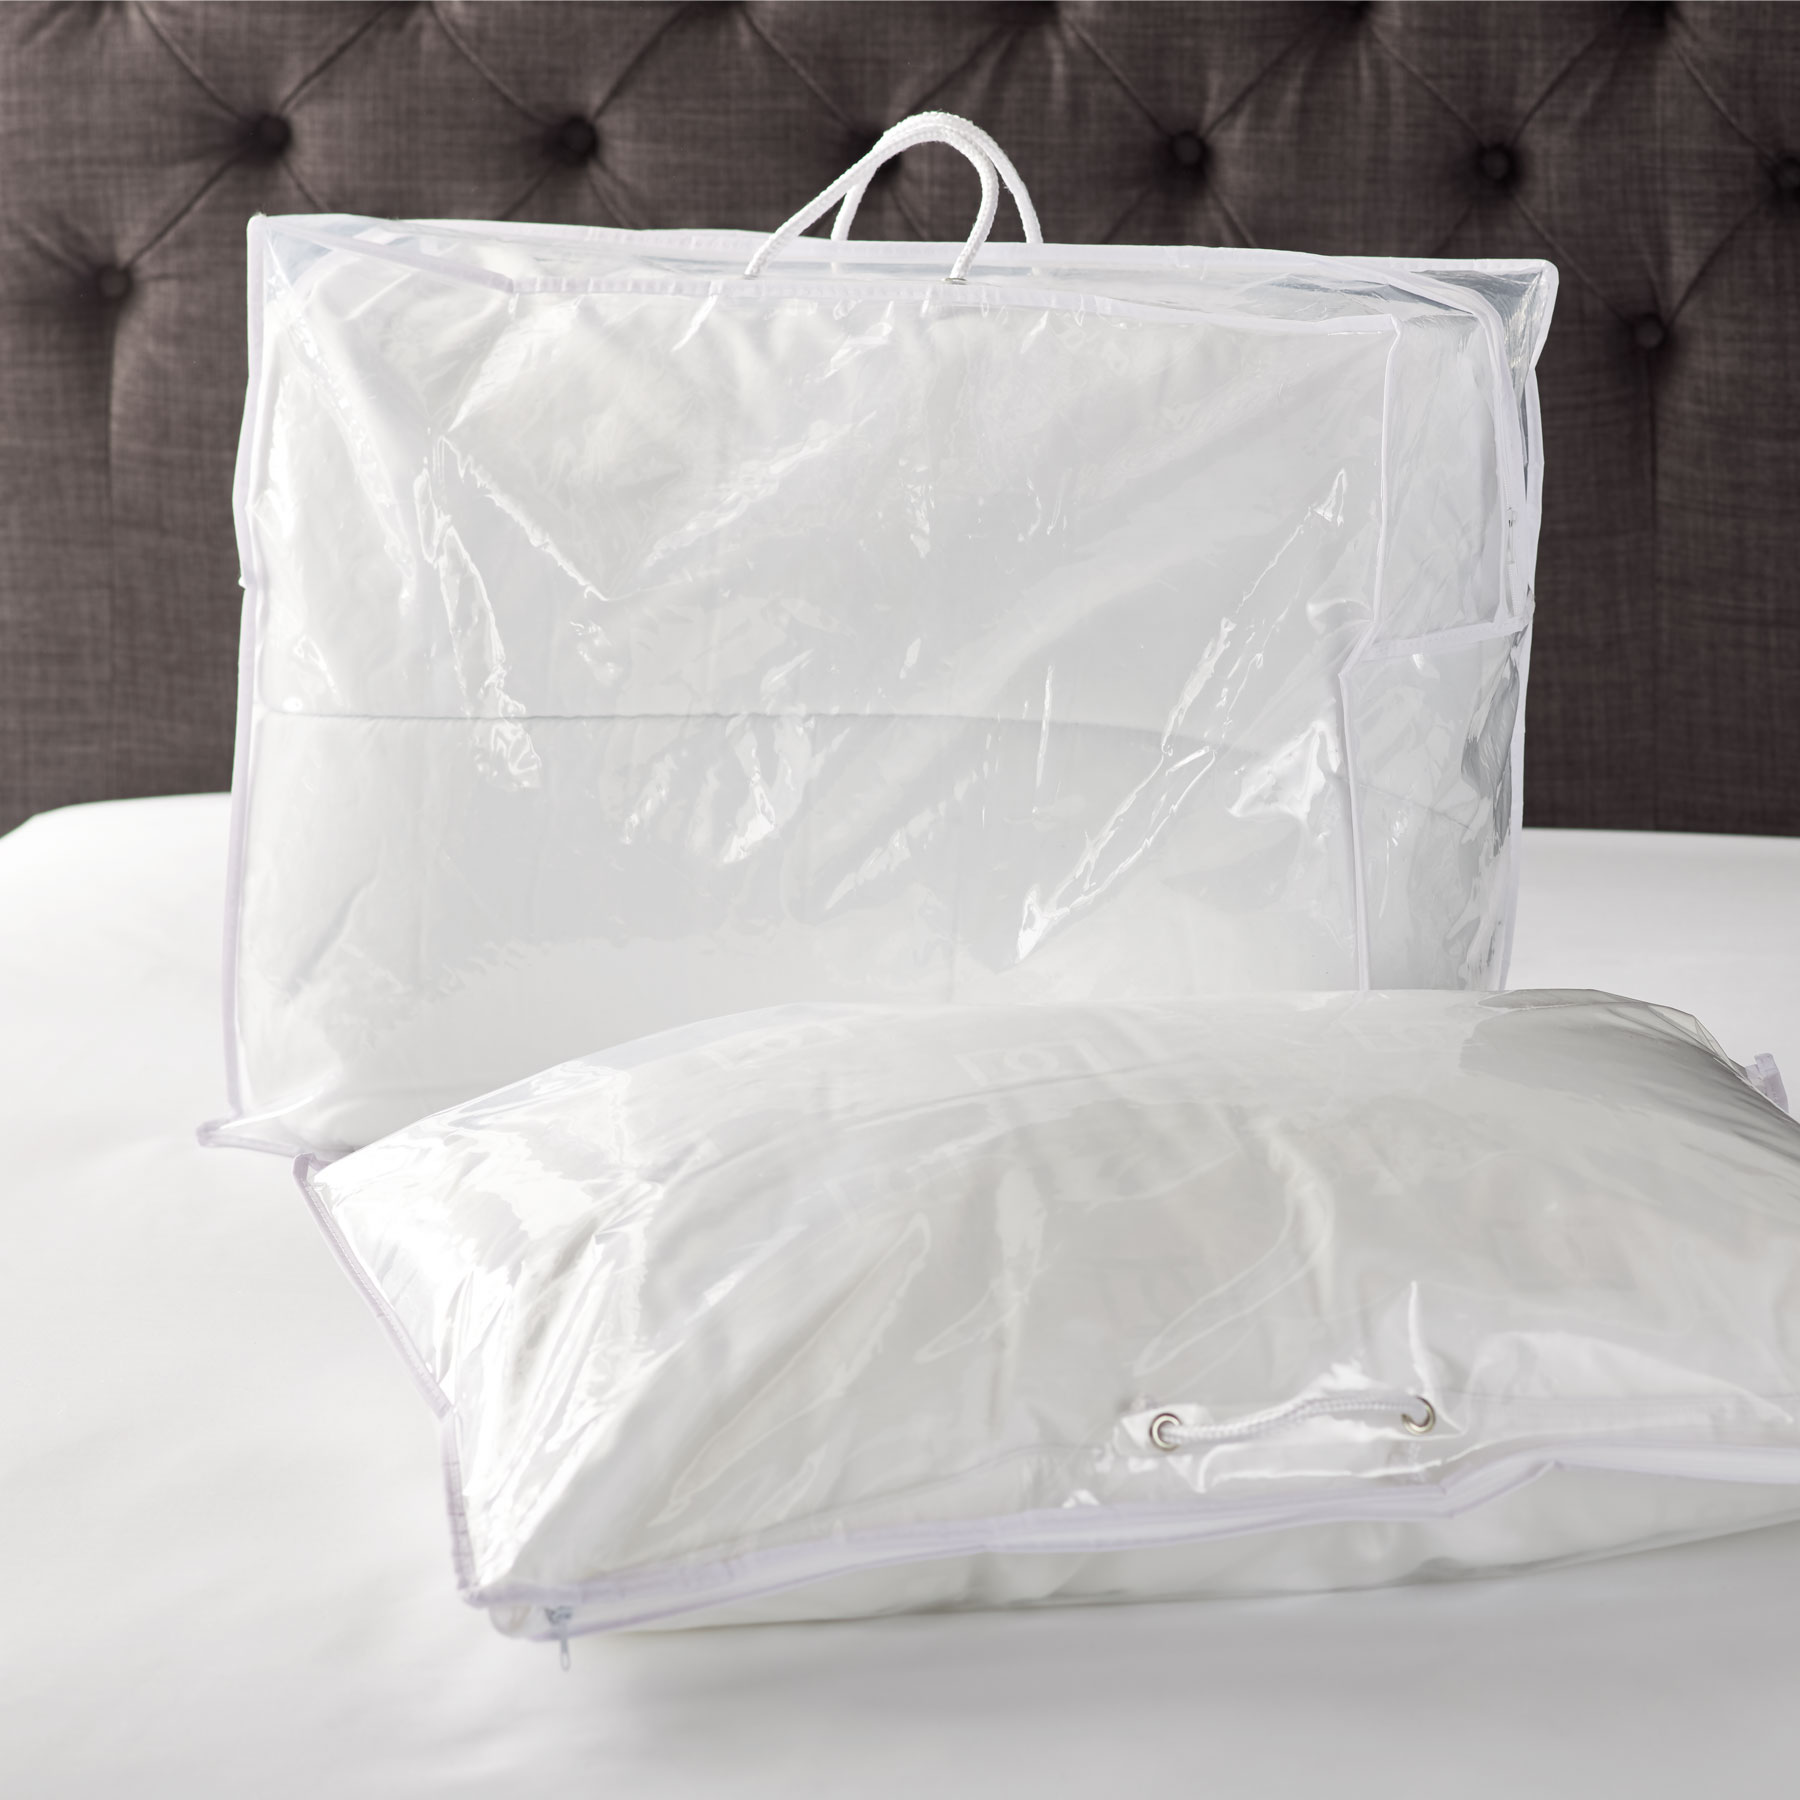 View Bedding Accessories Collection Details